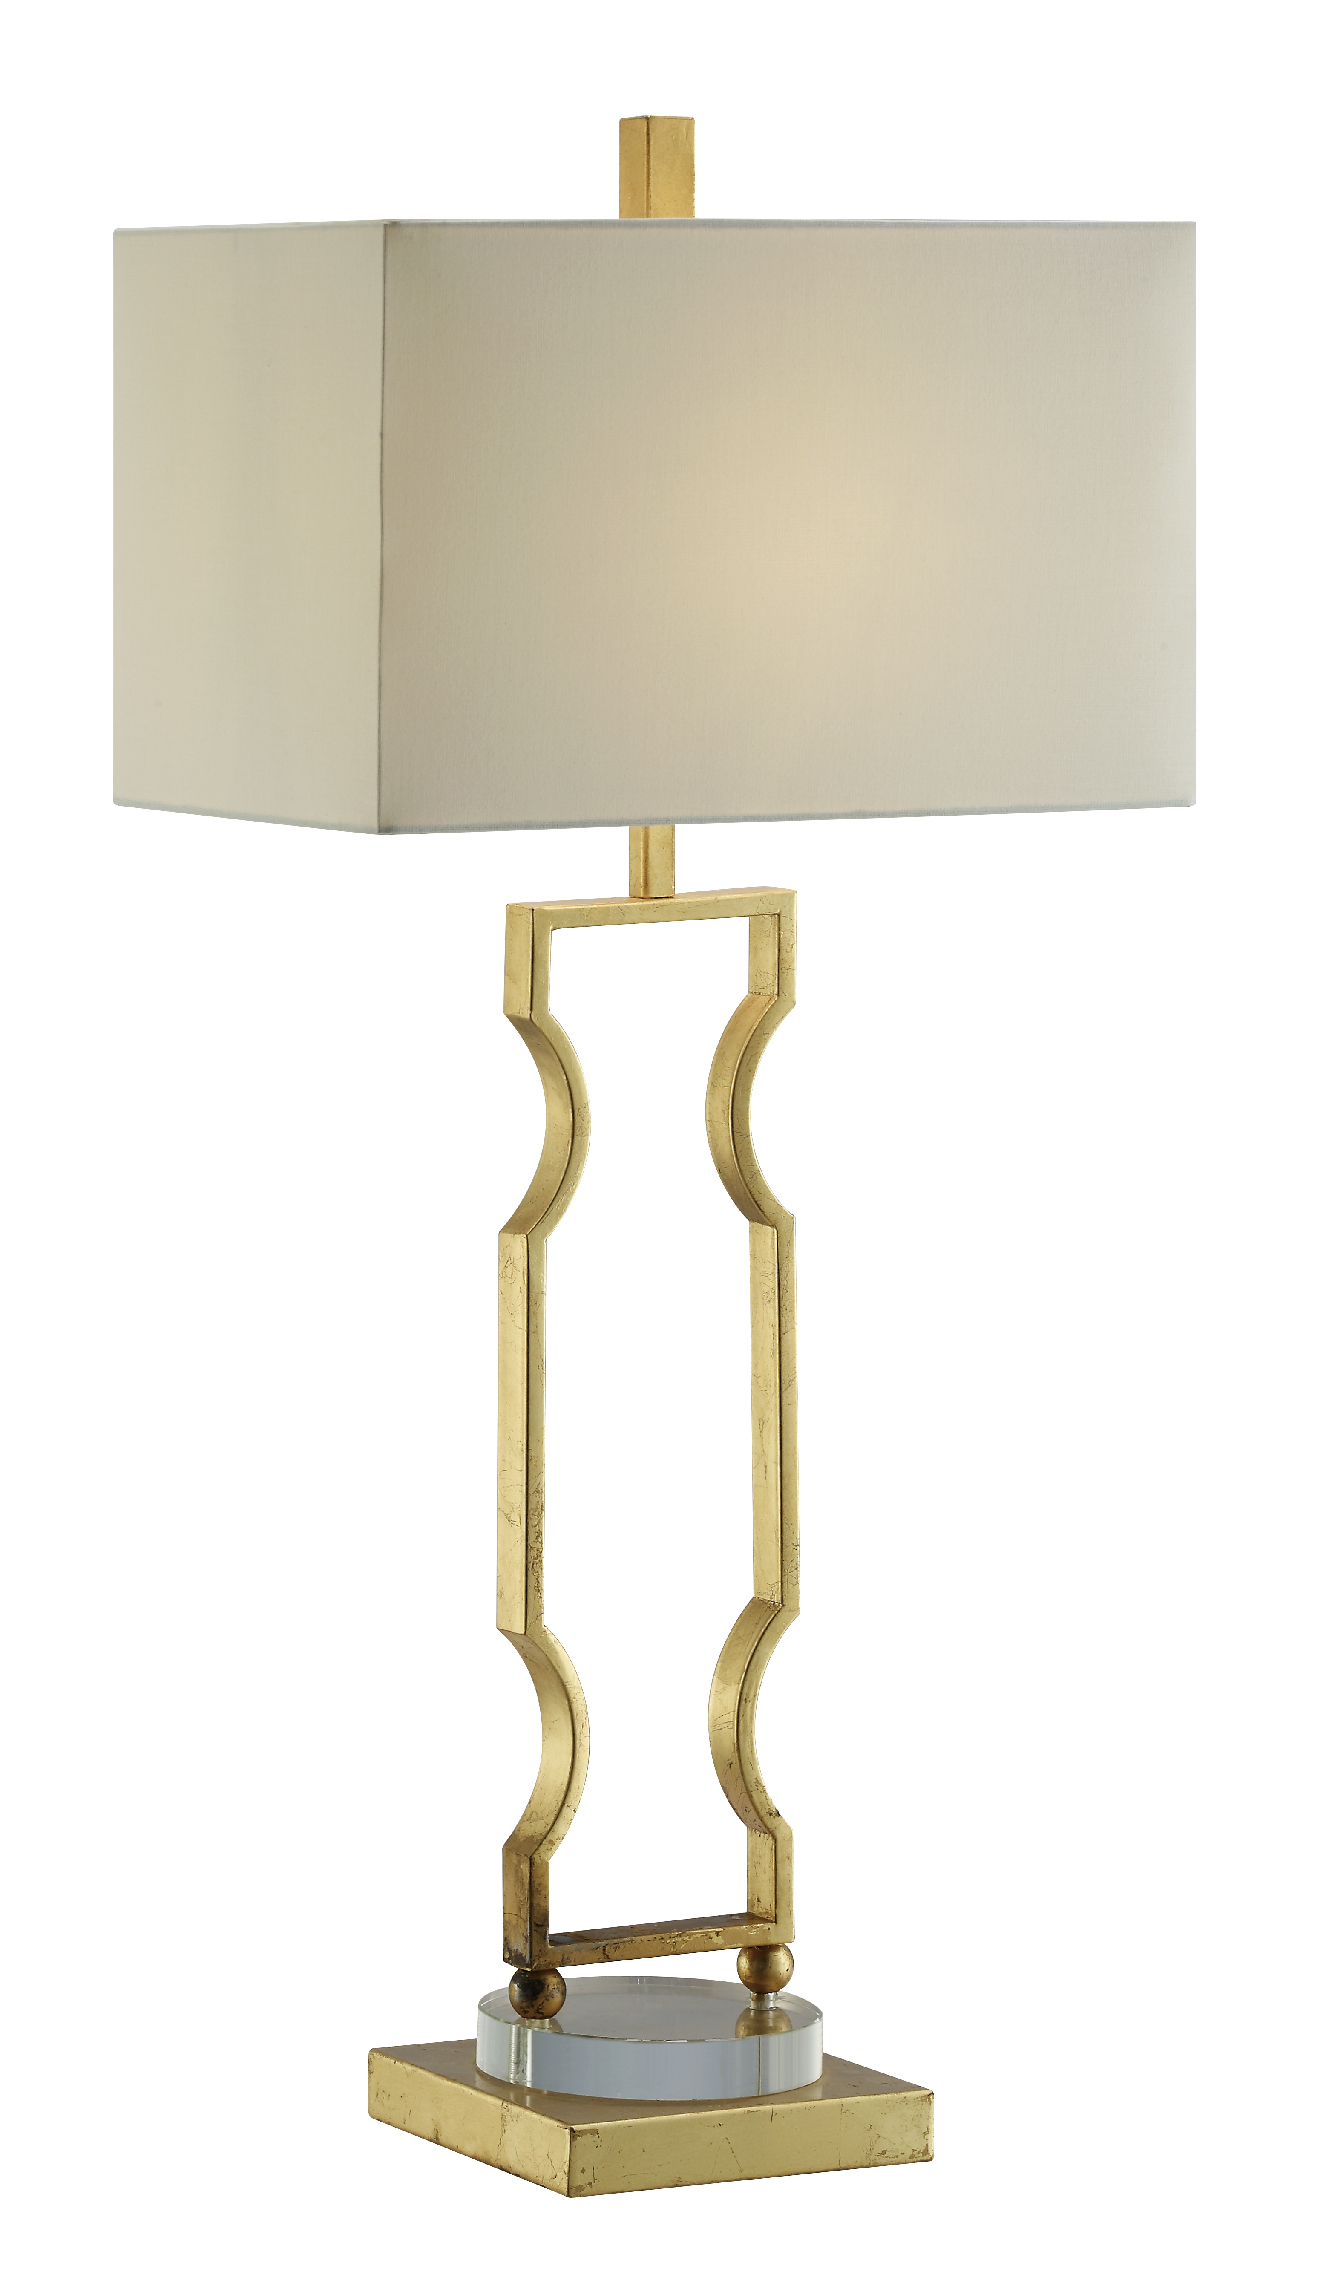 NEW Pair of gold Metal Acrylic Base Lamps